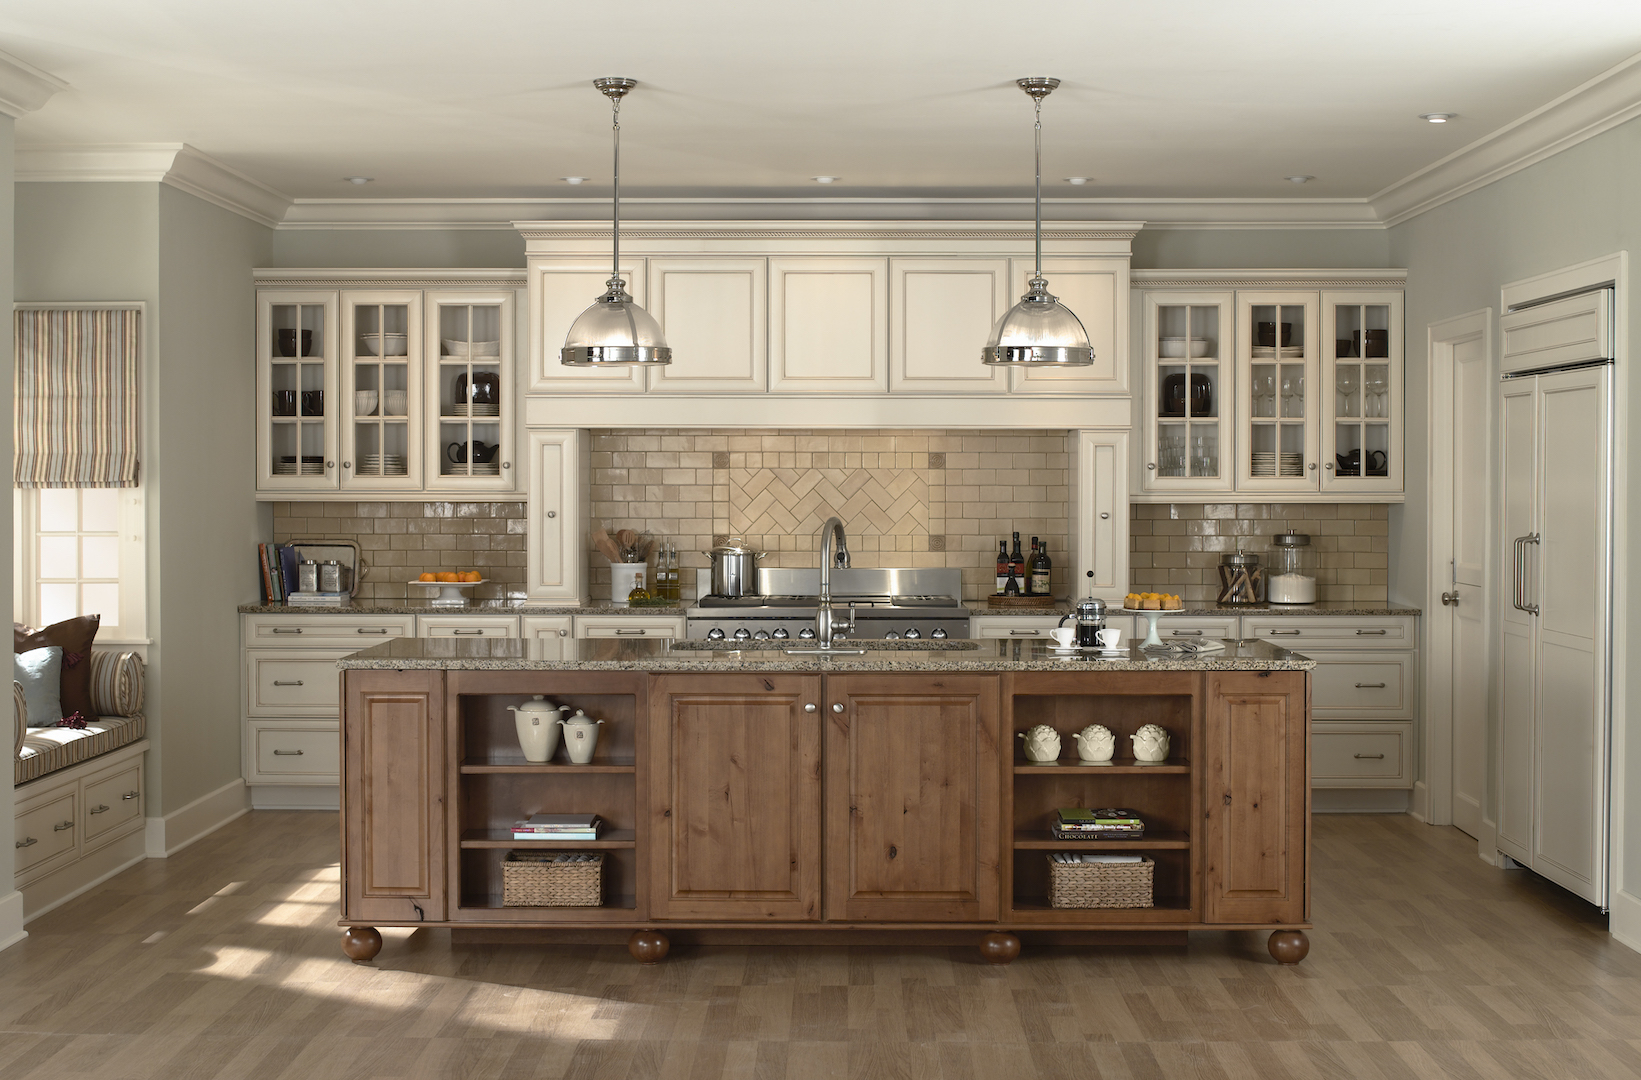 Kitchen Cabinets 101: Finishes